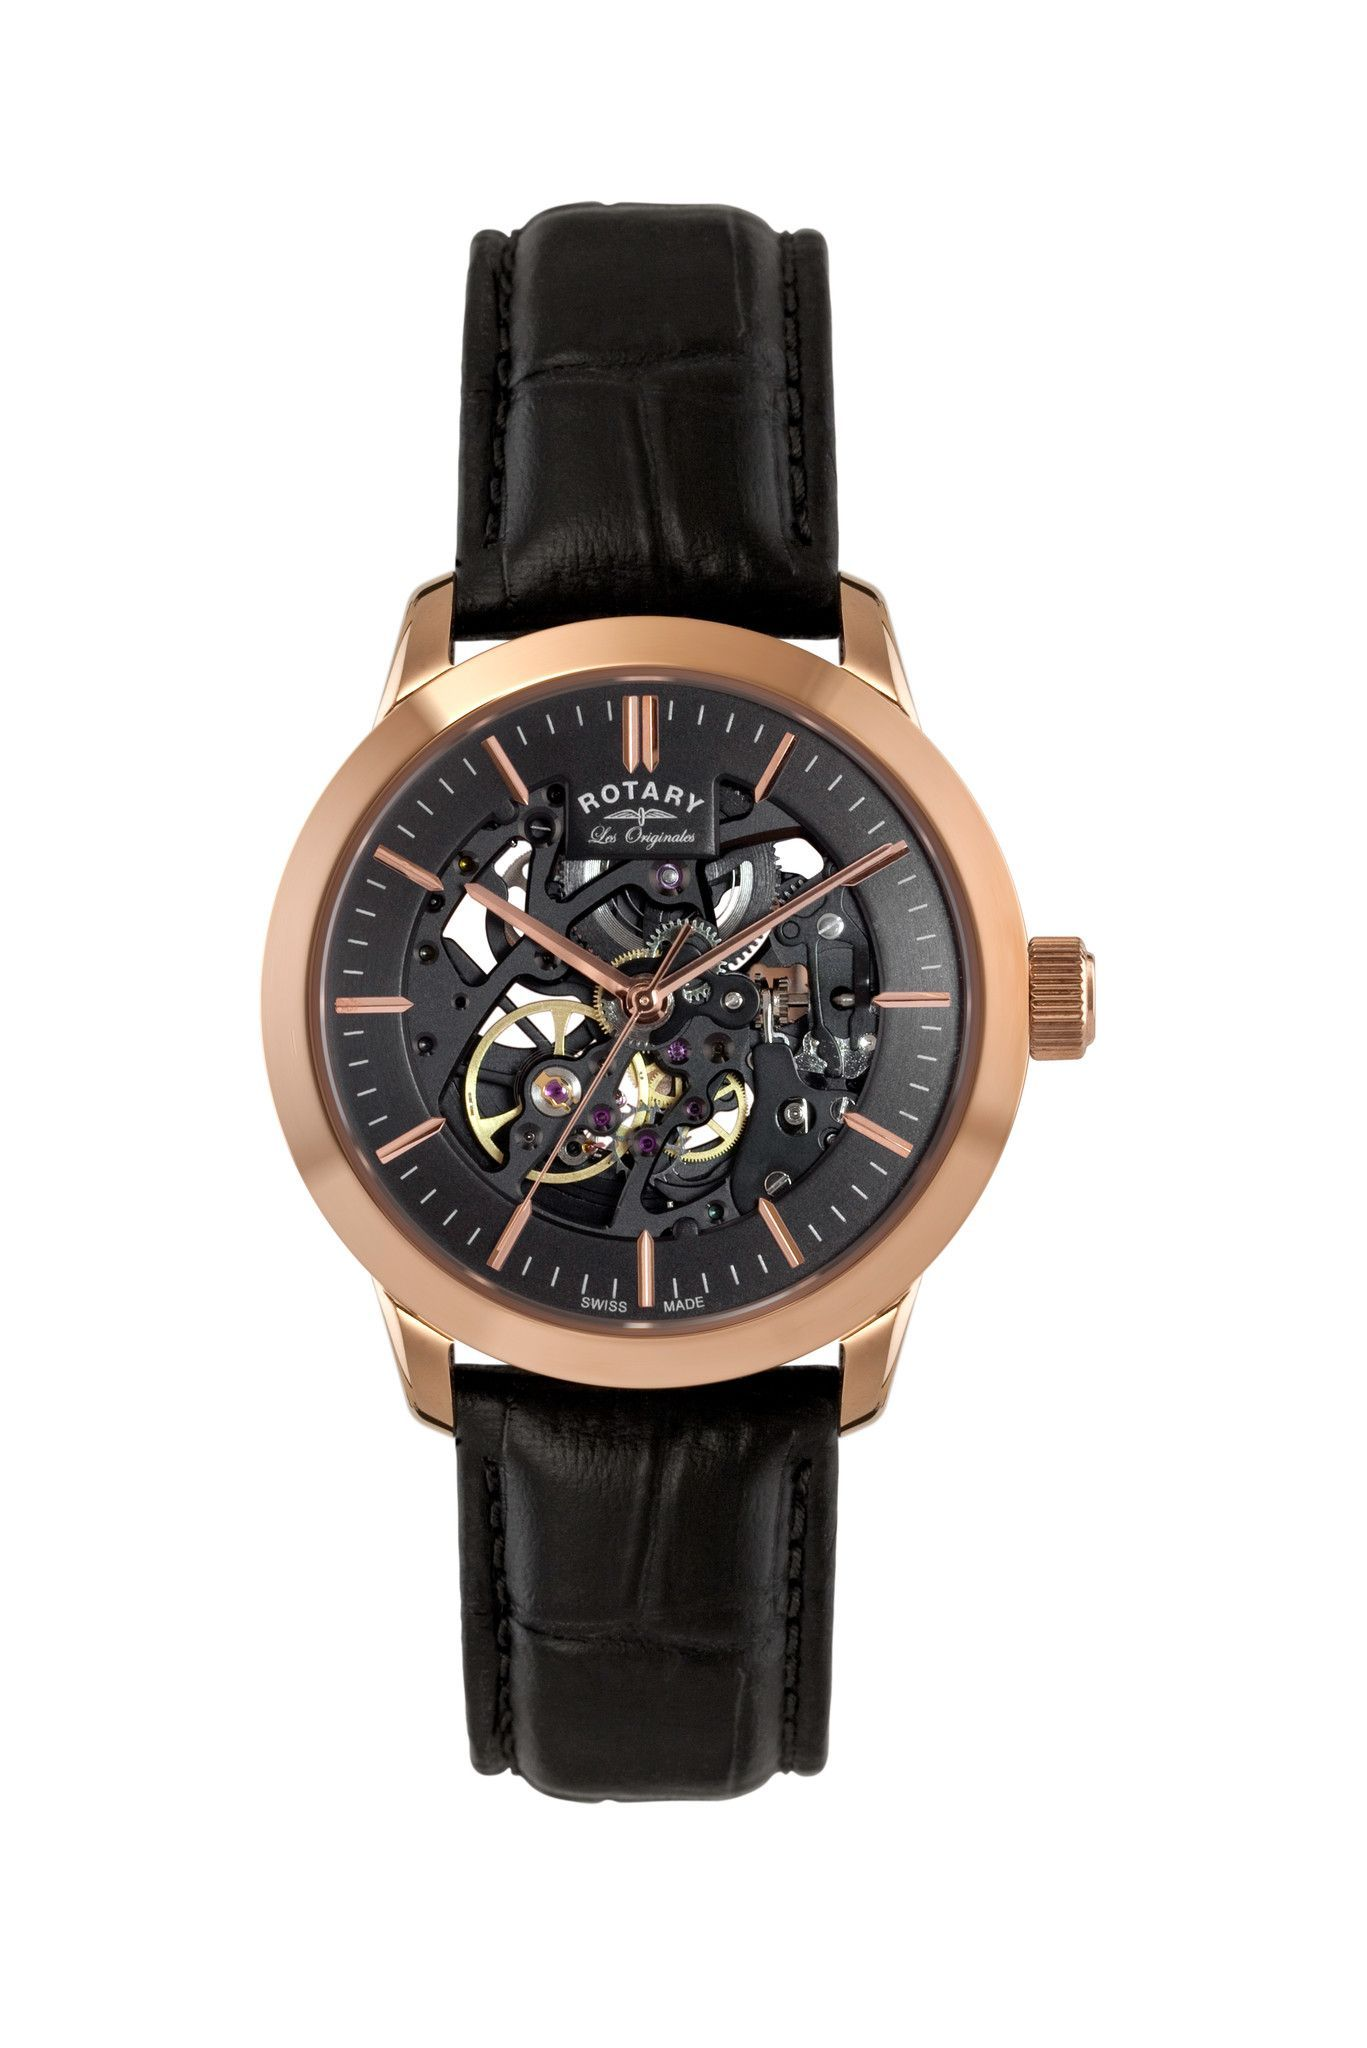 980ebdf20a8a Authentic Limited Edition Rotary LE90540 04 Men s Swiss Made Les Originales  Watch Skeleton Dial. Rotary Lifetime Guarantee Included.